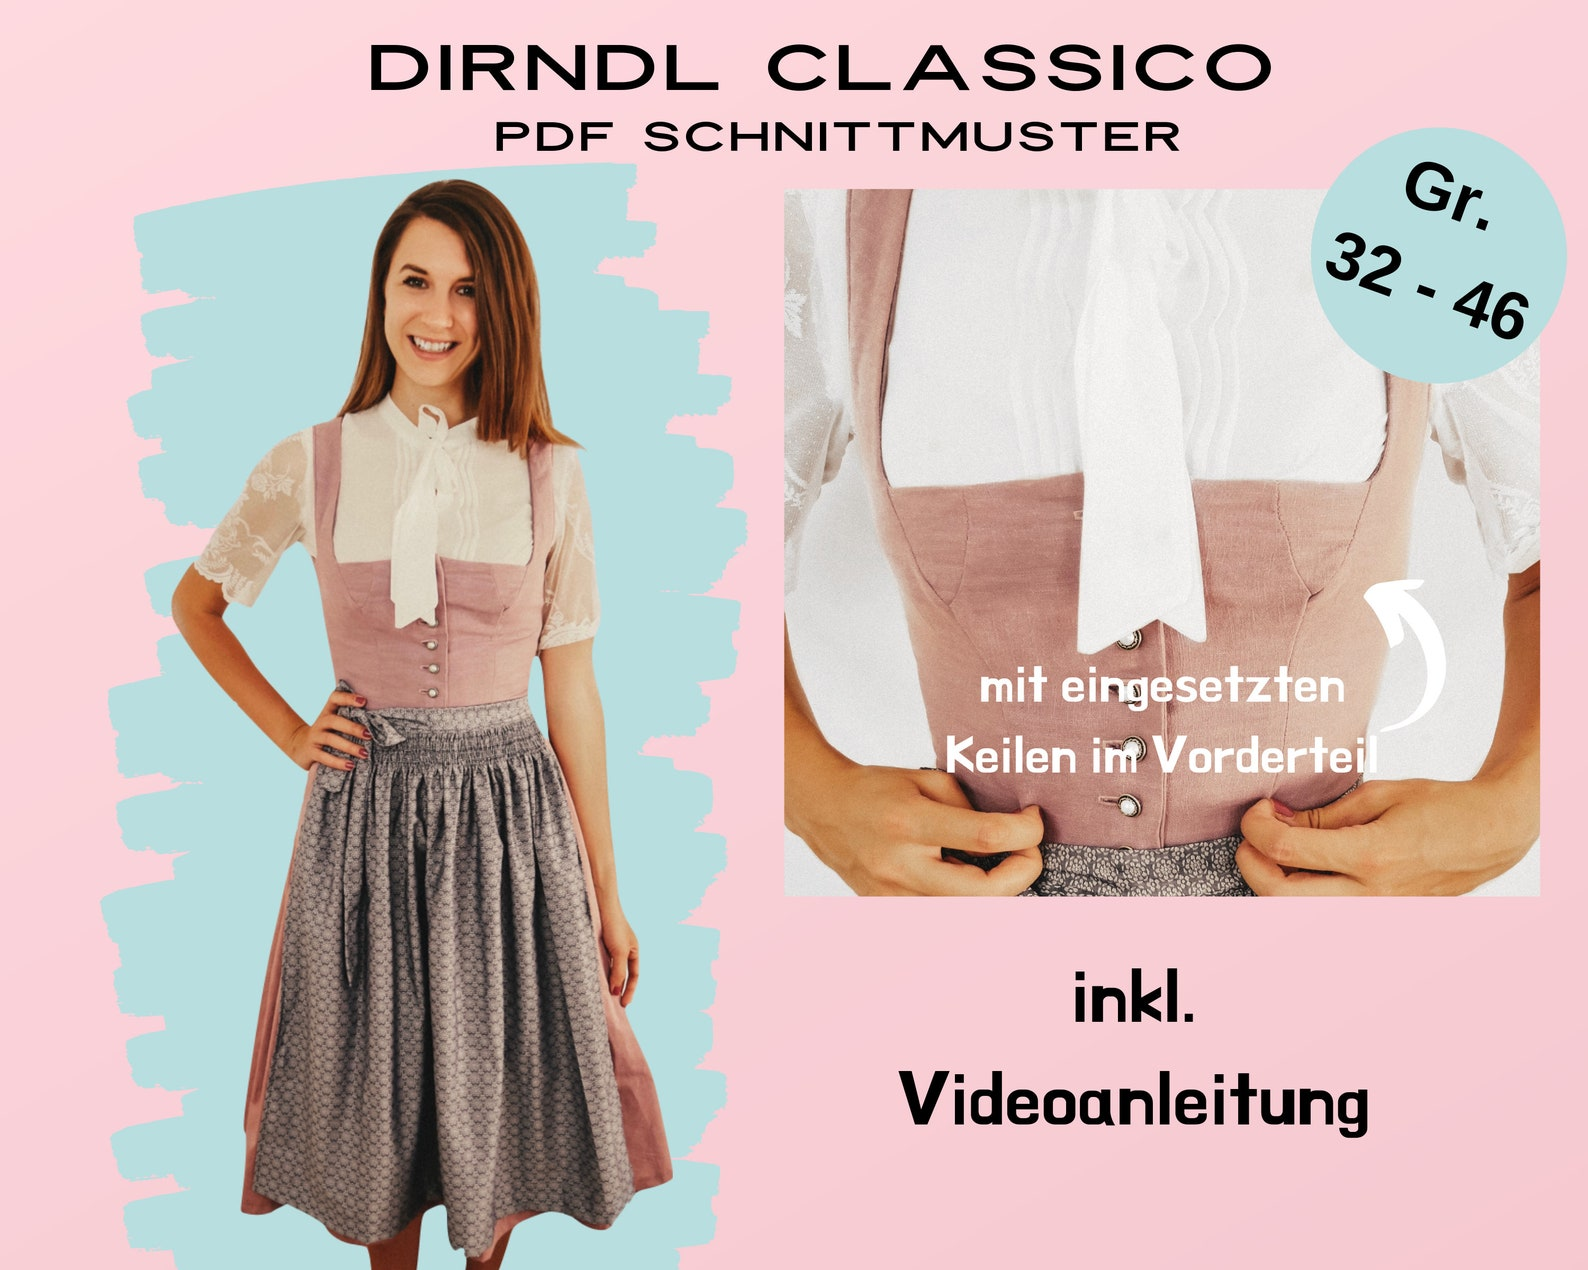 Dirndlschnittmuster Classico, 32-46